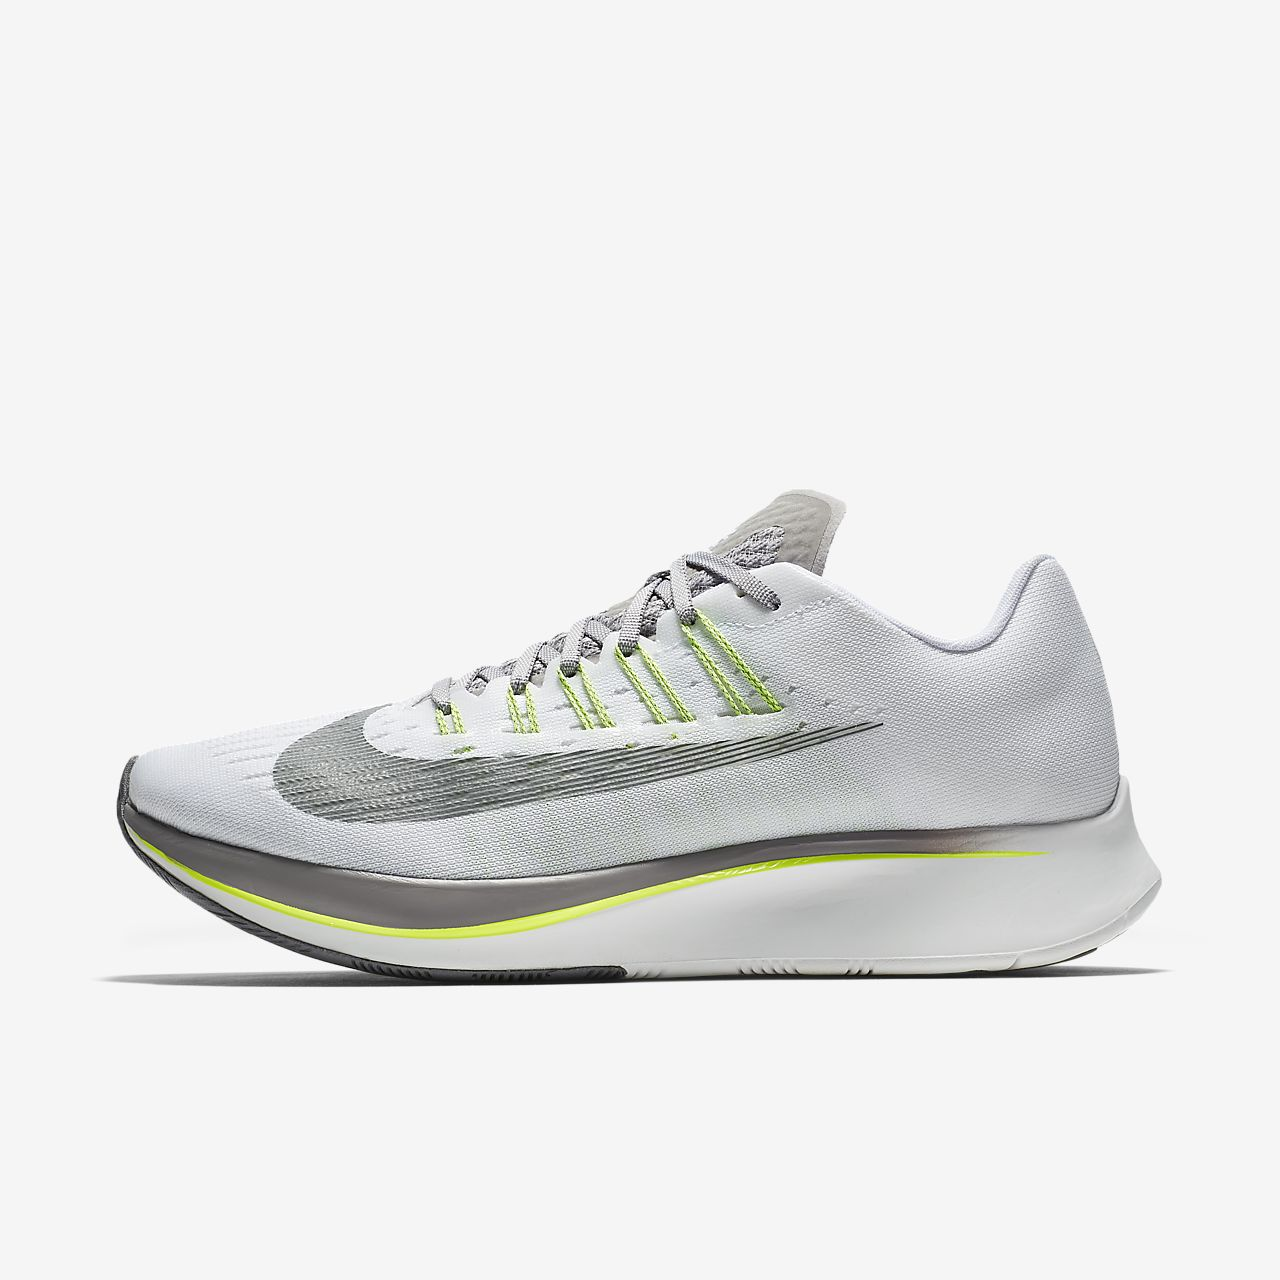 31719aa8399b Nike Zoom Fly Men s Running Shoe. Nike.com